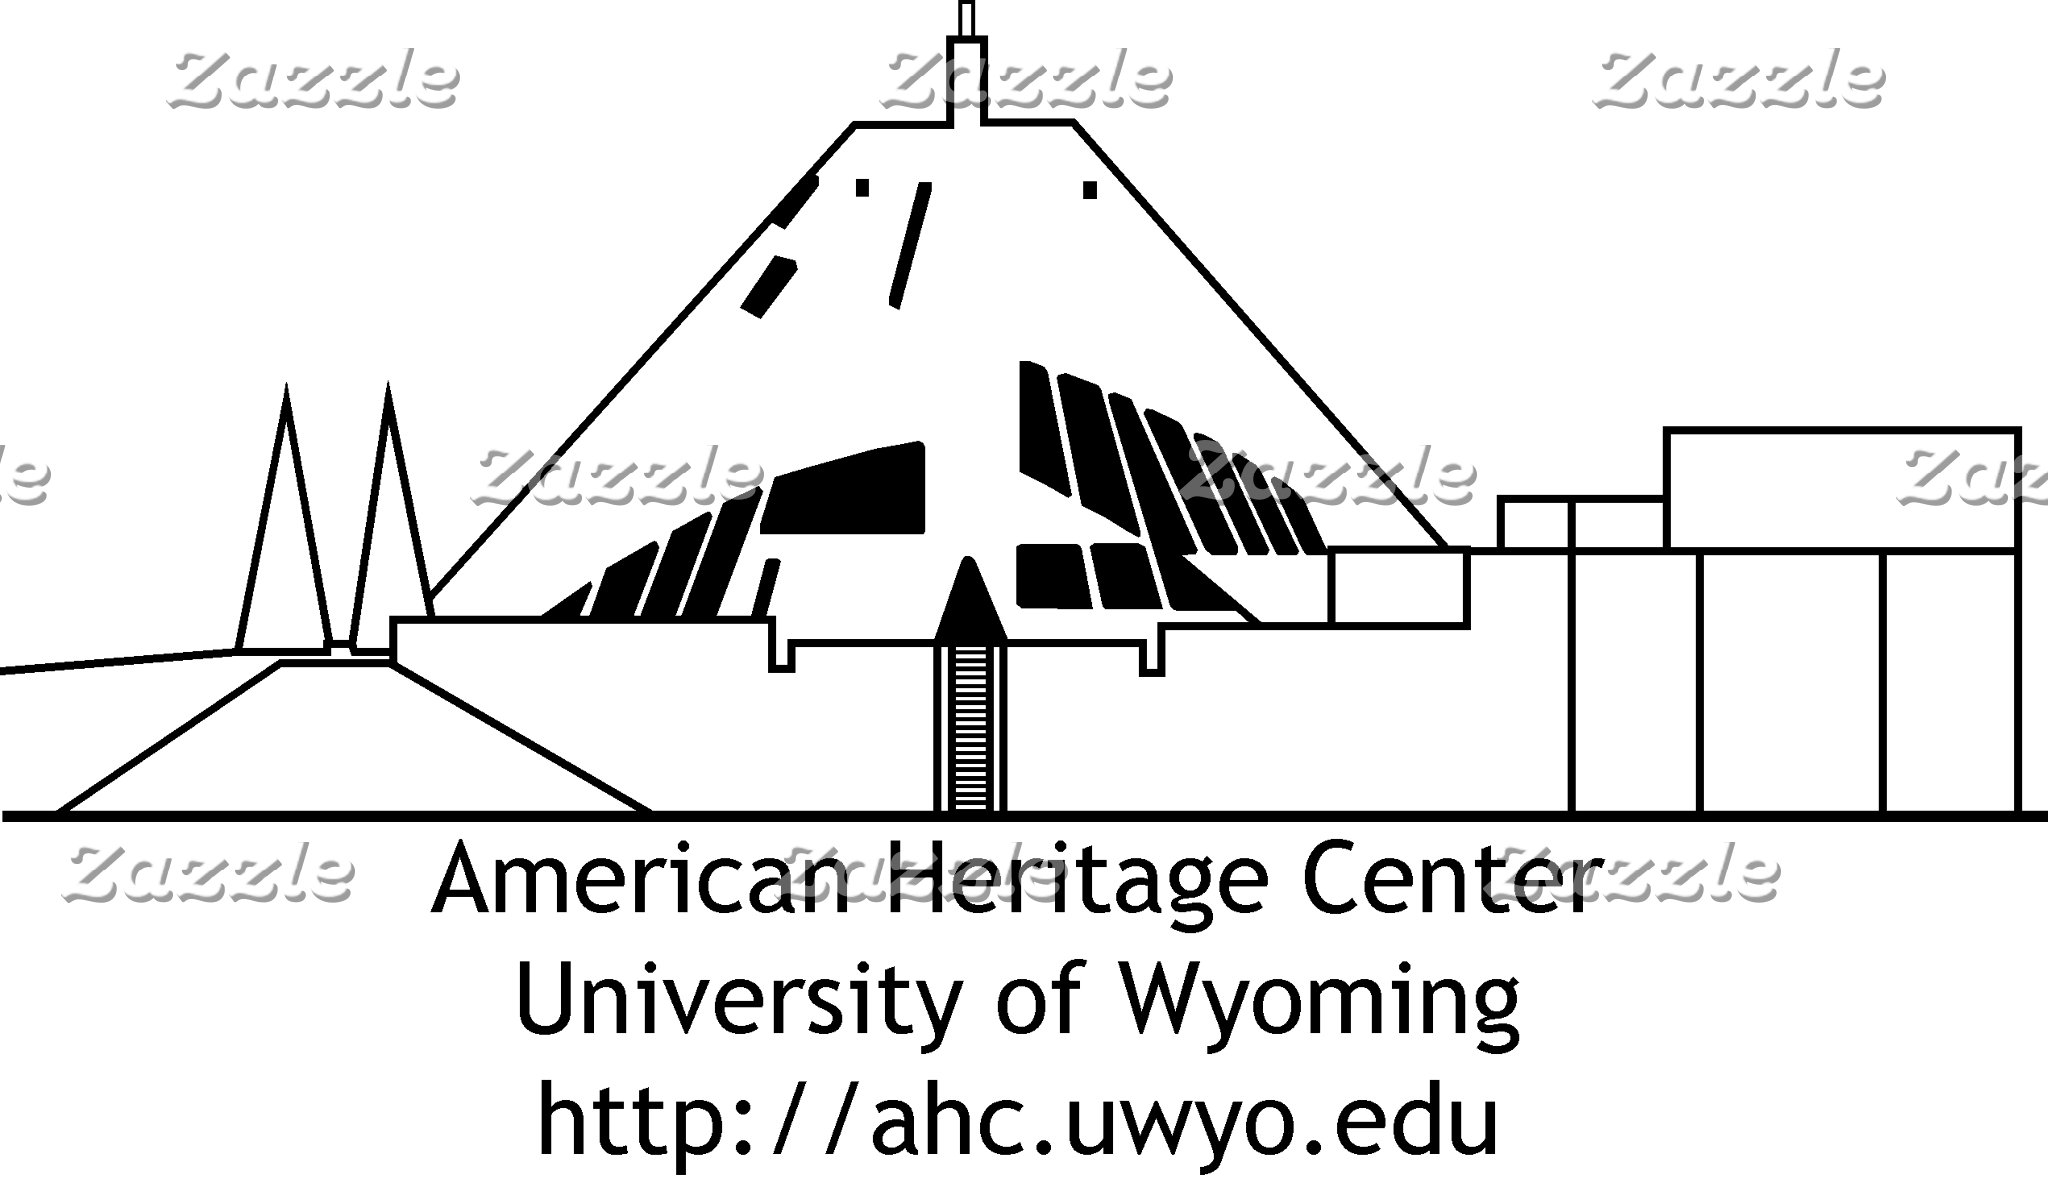 University of Wyoming's American Heritage Center